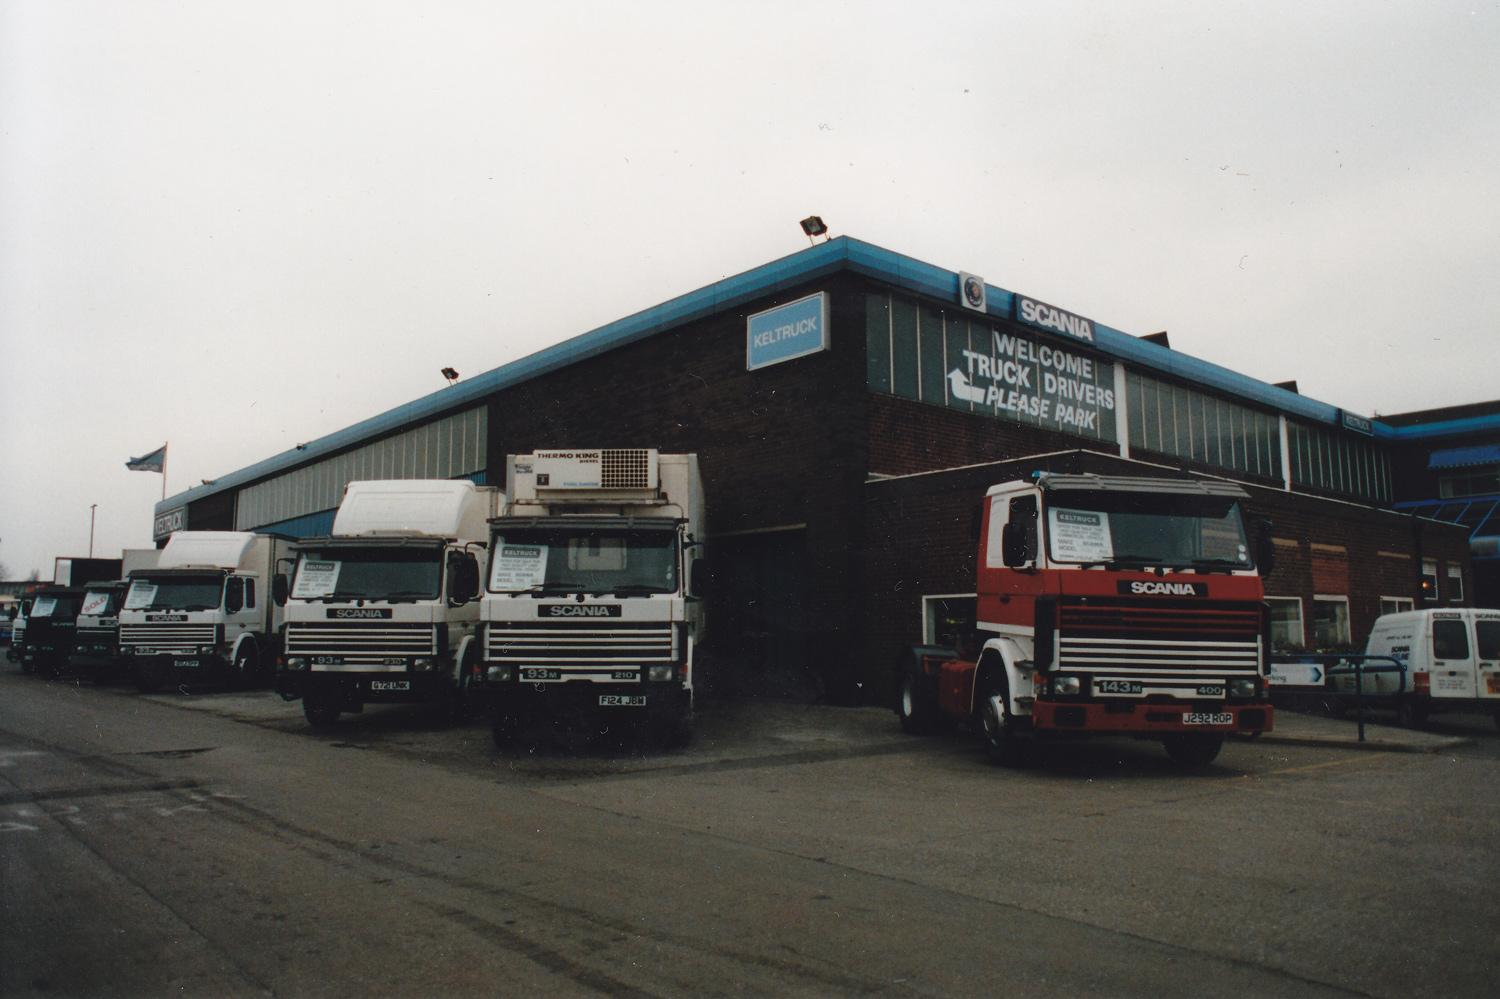 Keltruck West Bromwich circa 1992